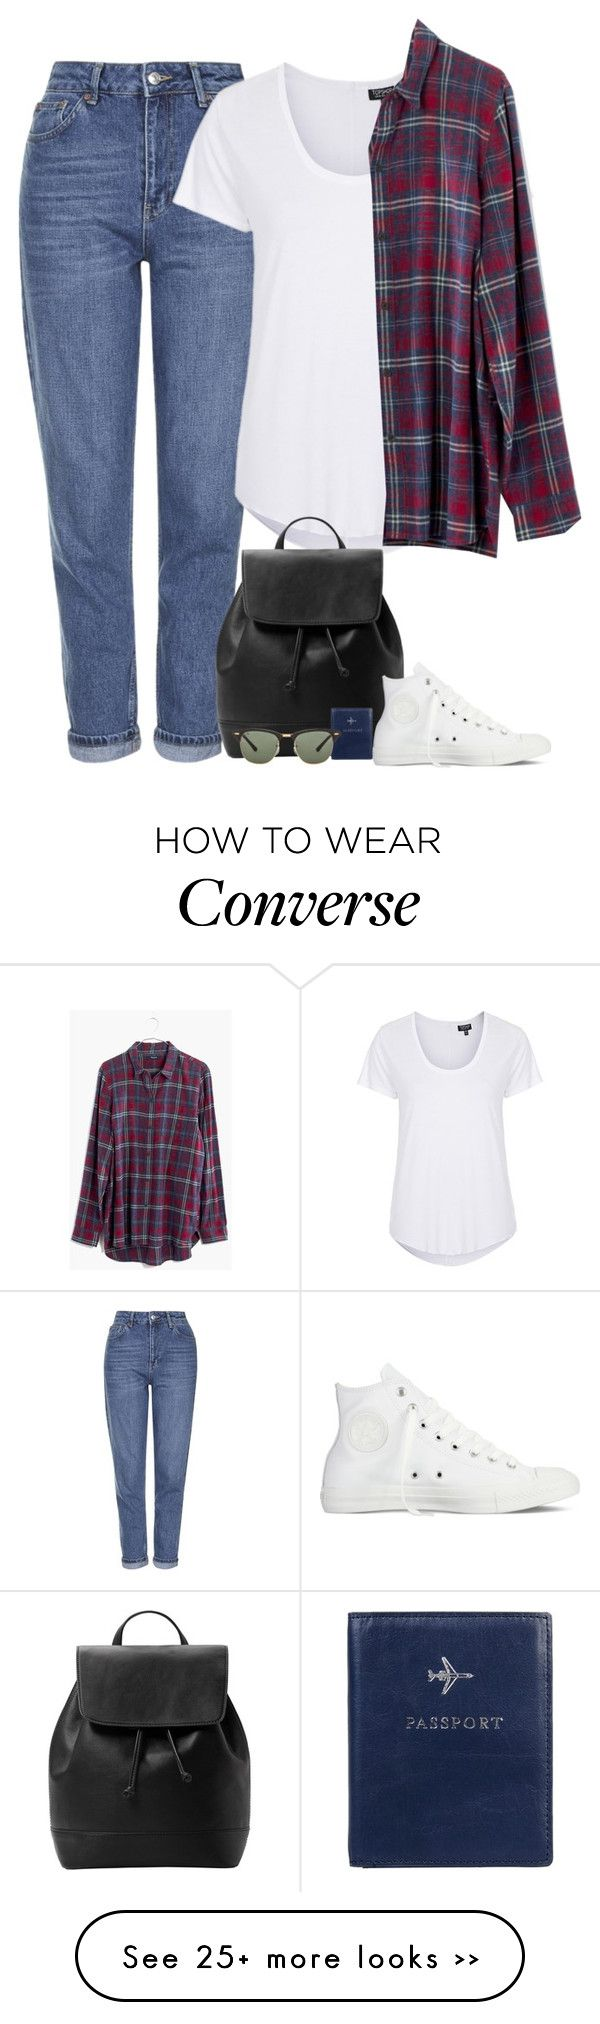 """""""Untitled #5495"""" by fanny483 on Polyvore featuring Topshop, Madewell, MANGO, Converse, FOSSIL and Ray-Ban"""